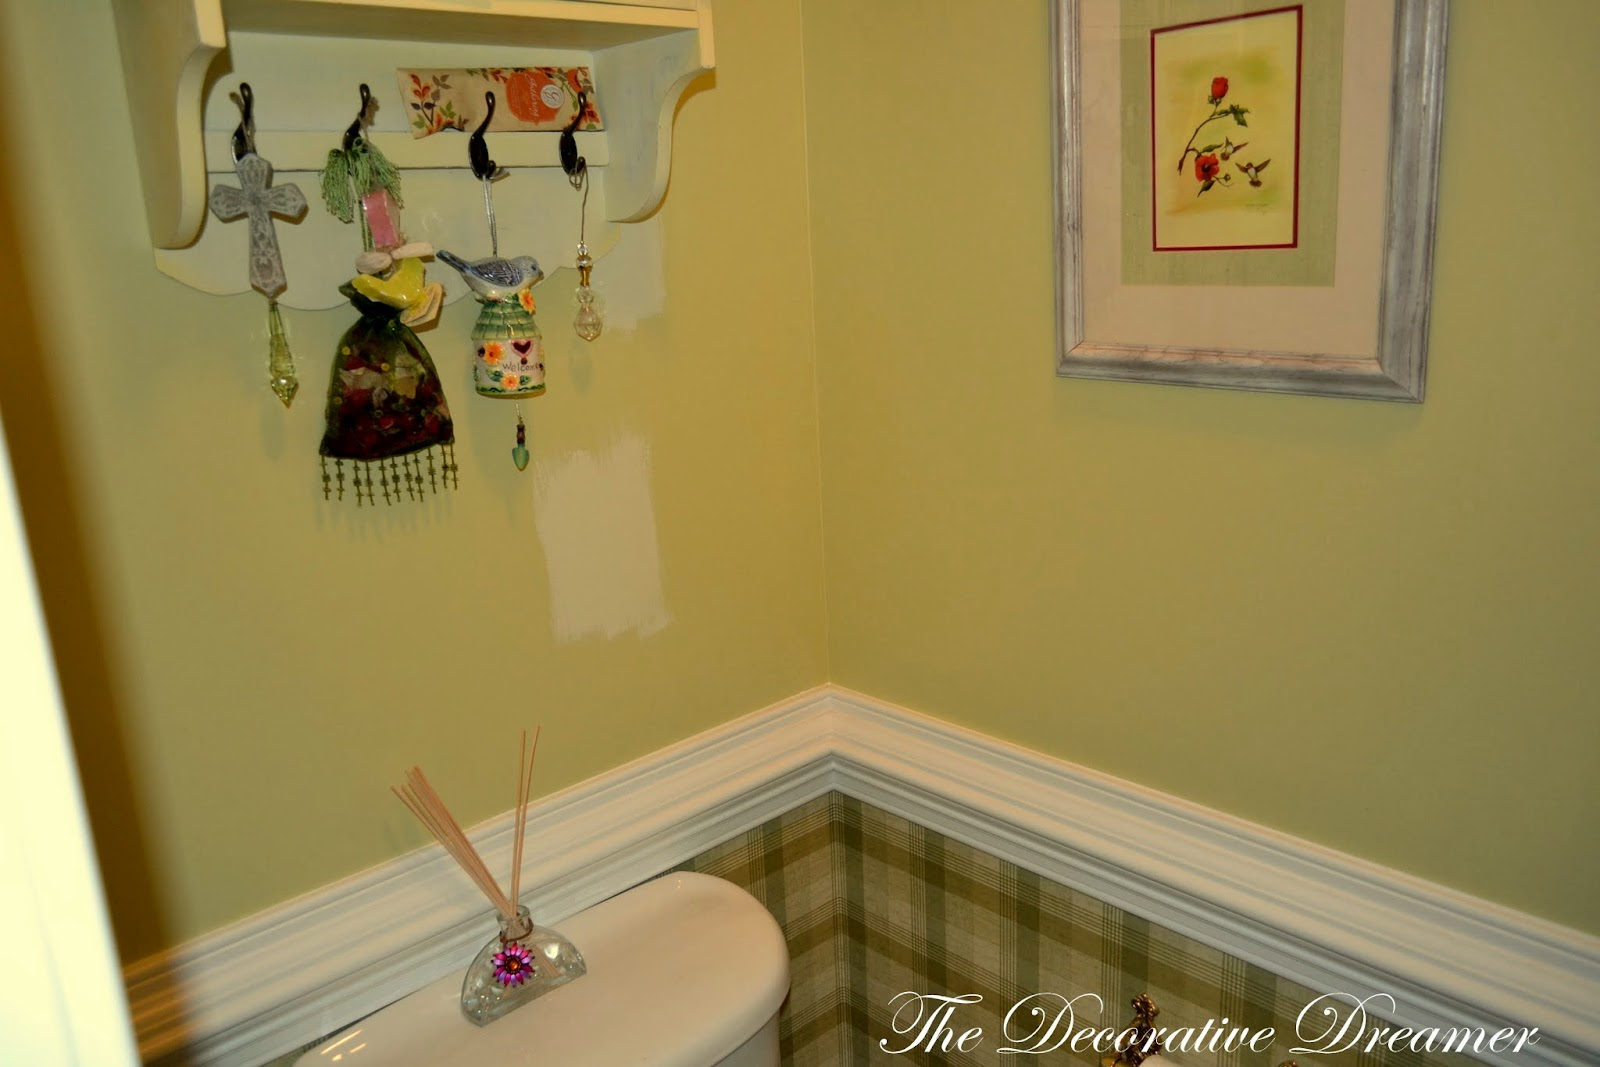 The Decorative Dreamer: Repainting the Kitchen